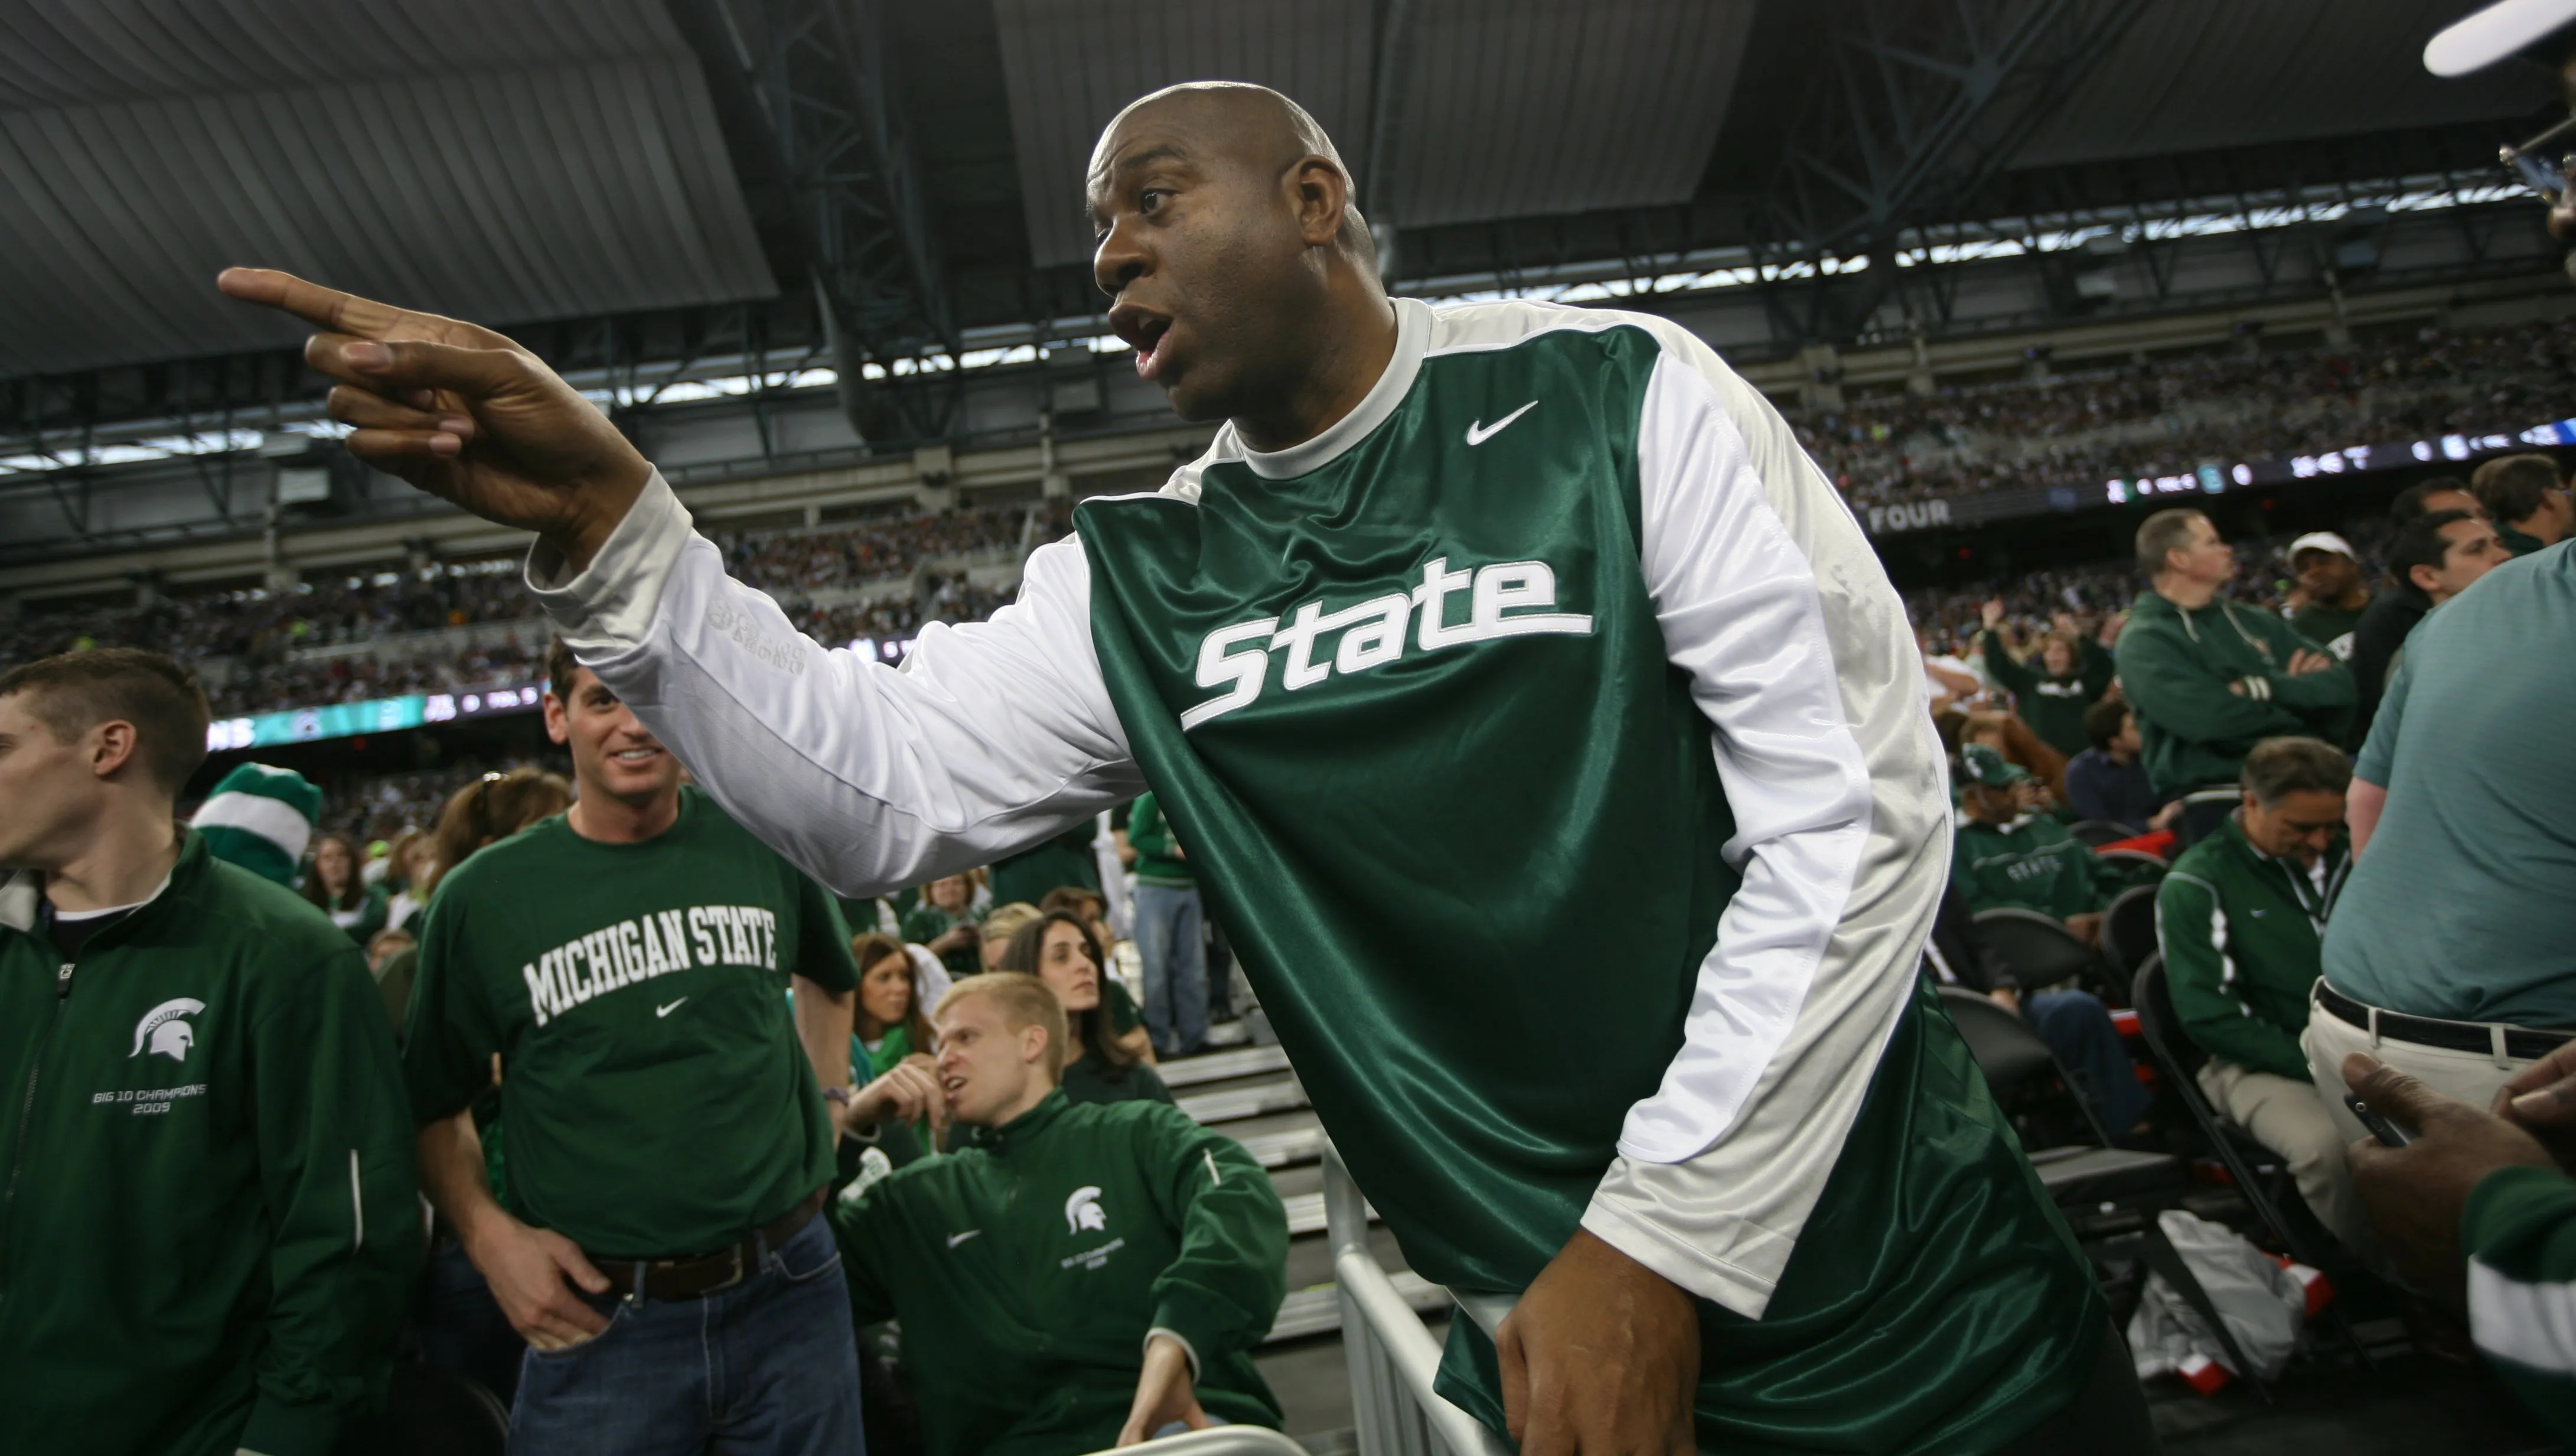 Magic Johnson Michigan State officials aware of assaults